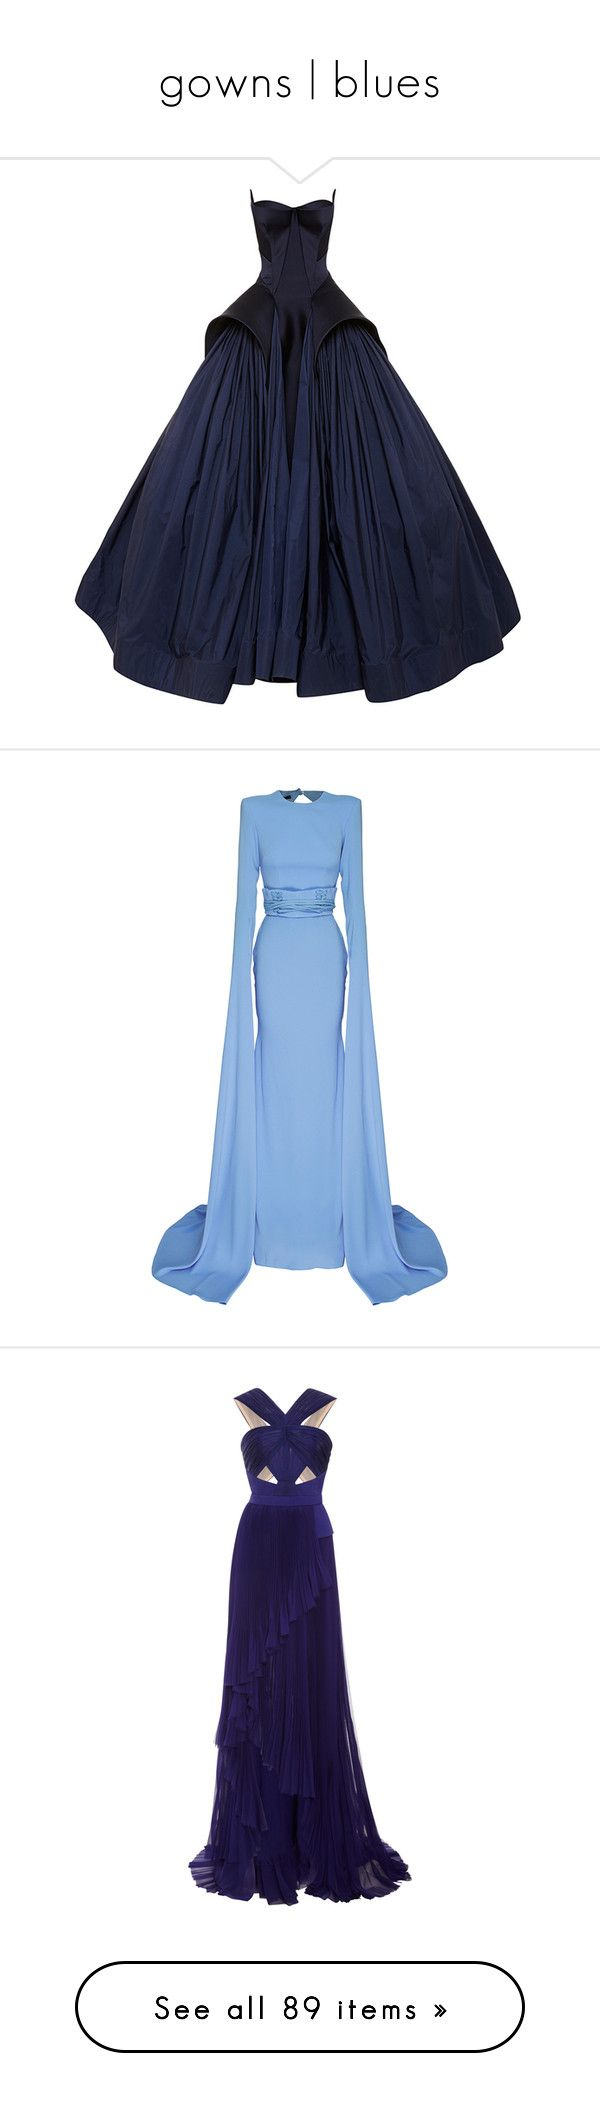 """""""gowns   blues"""" by blackguarde ❤ liked on Polyvore featuring dresses, gowns, long dresses, blue, royal blue, strapless gown, royal blue ball gown, royal blue long dress, peplum dress and long sleeve floor length dress"""